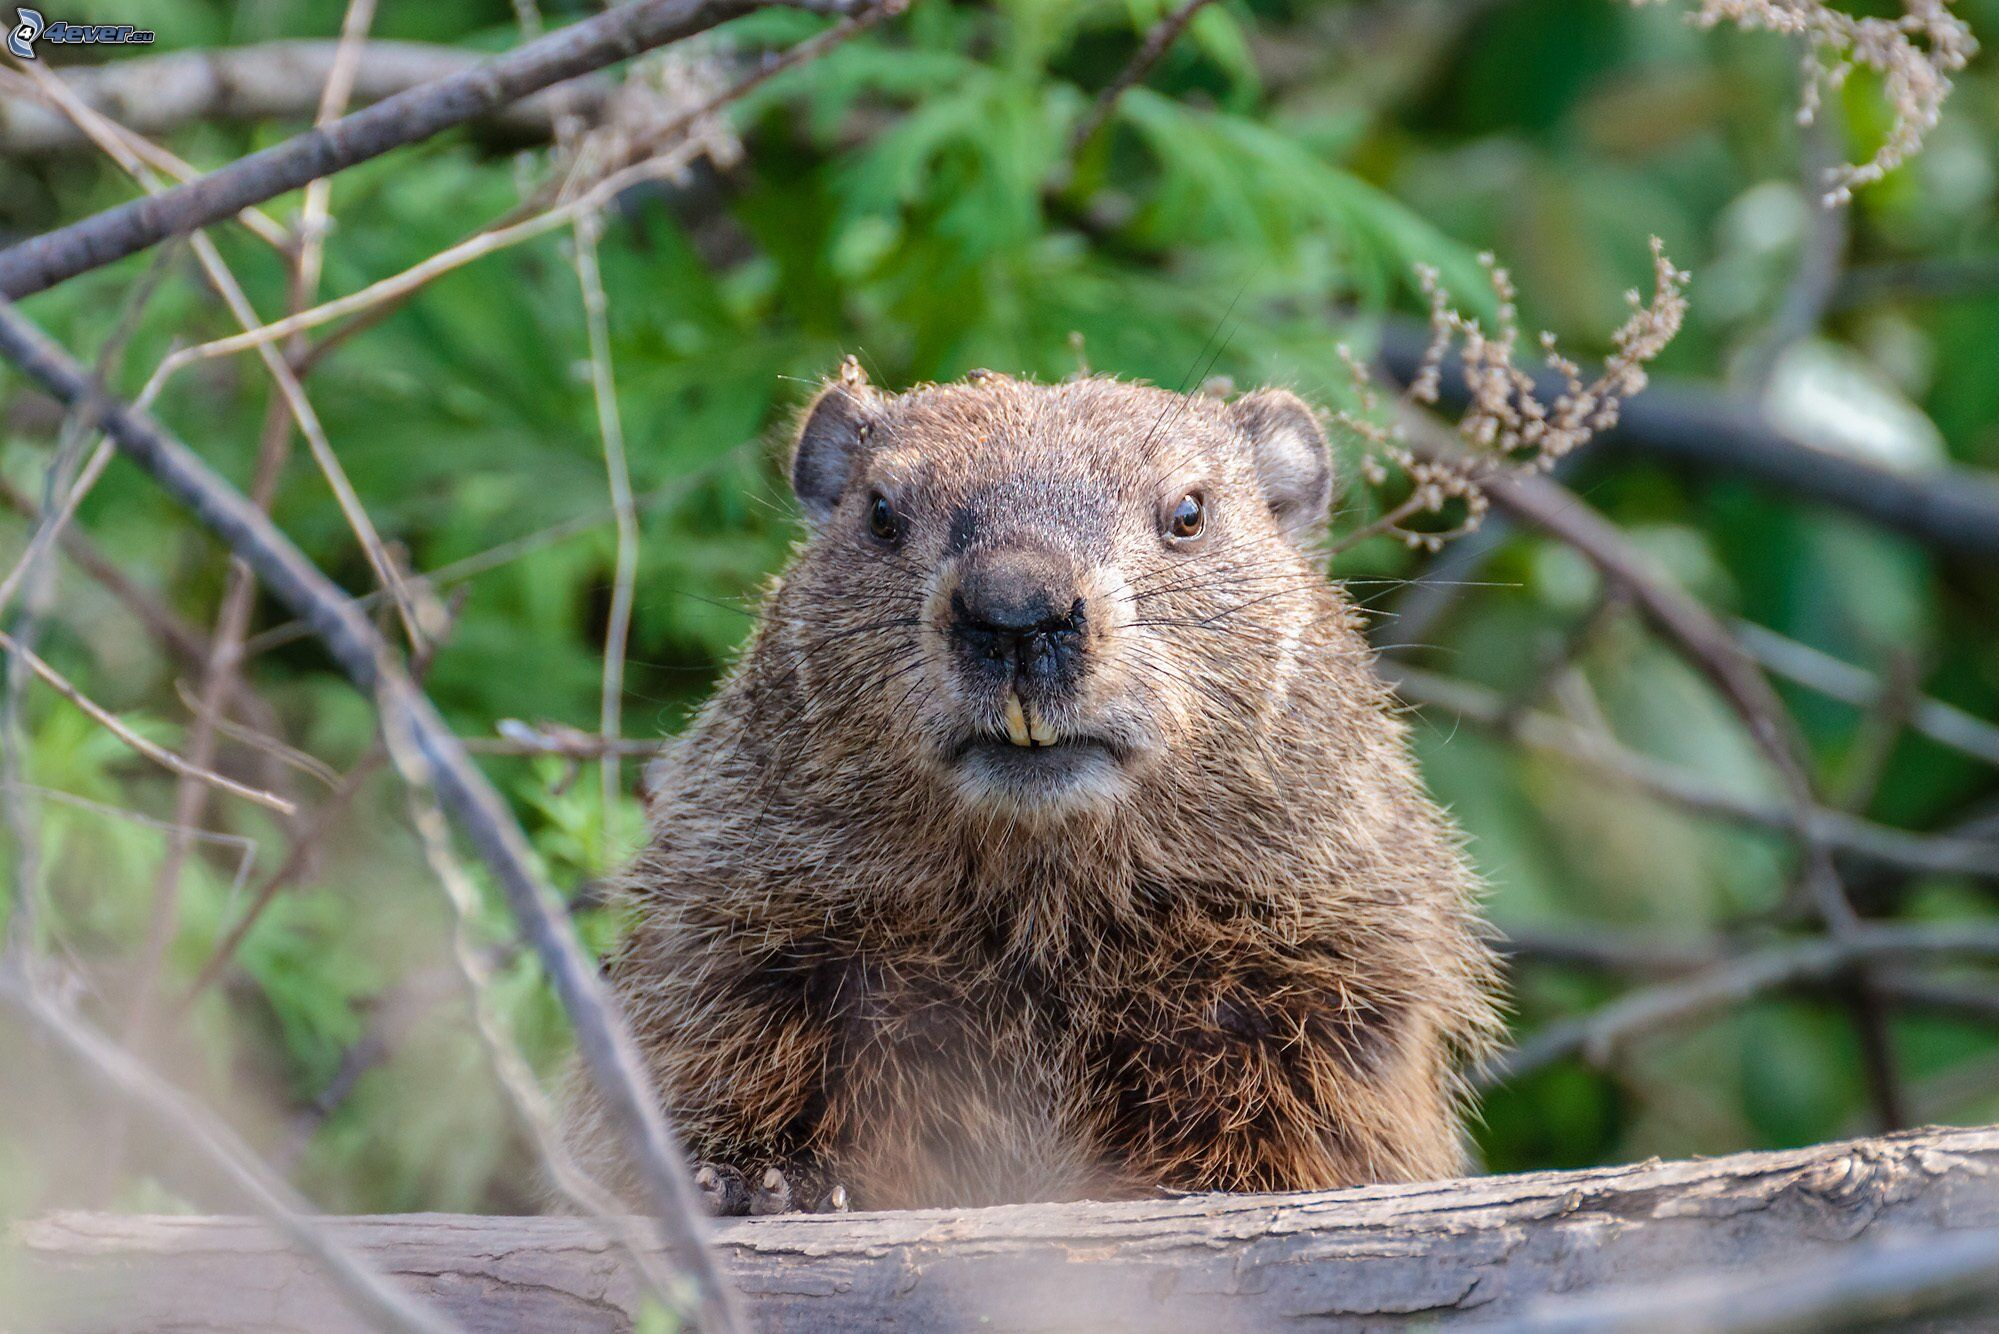 Wild Hog Hunting in Southern Louisiana Breaux Bridge, LA Pictures of a ground hog